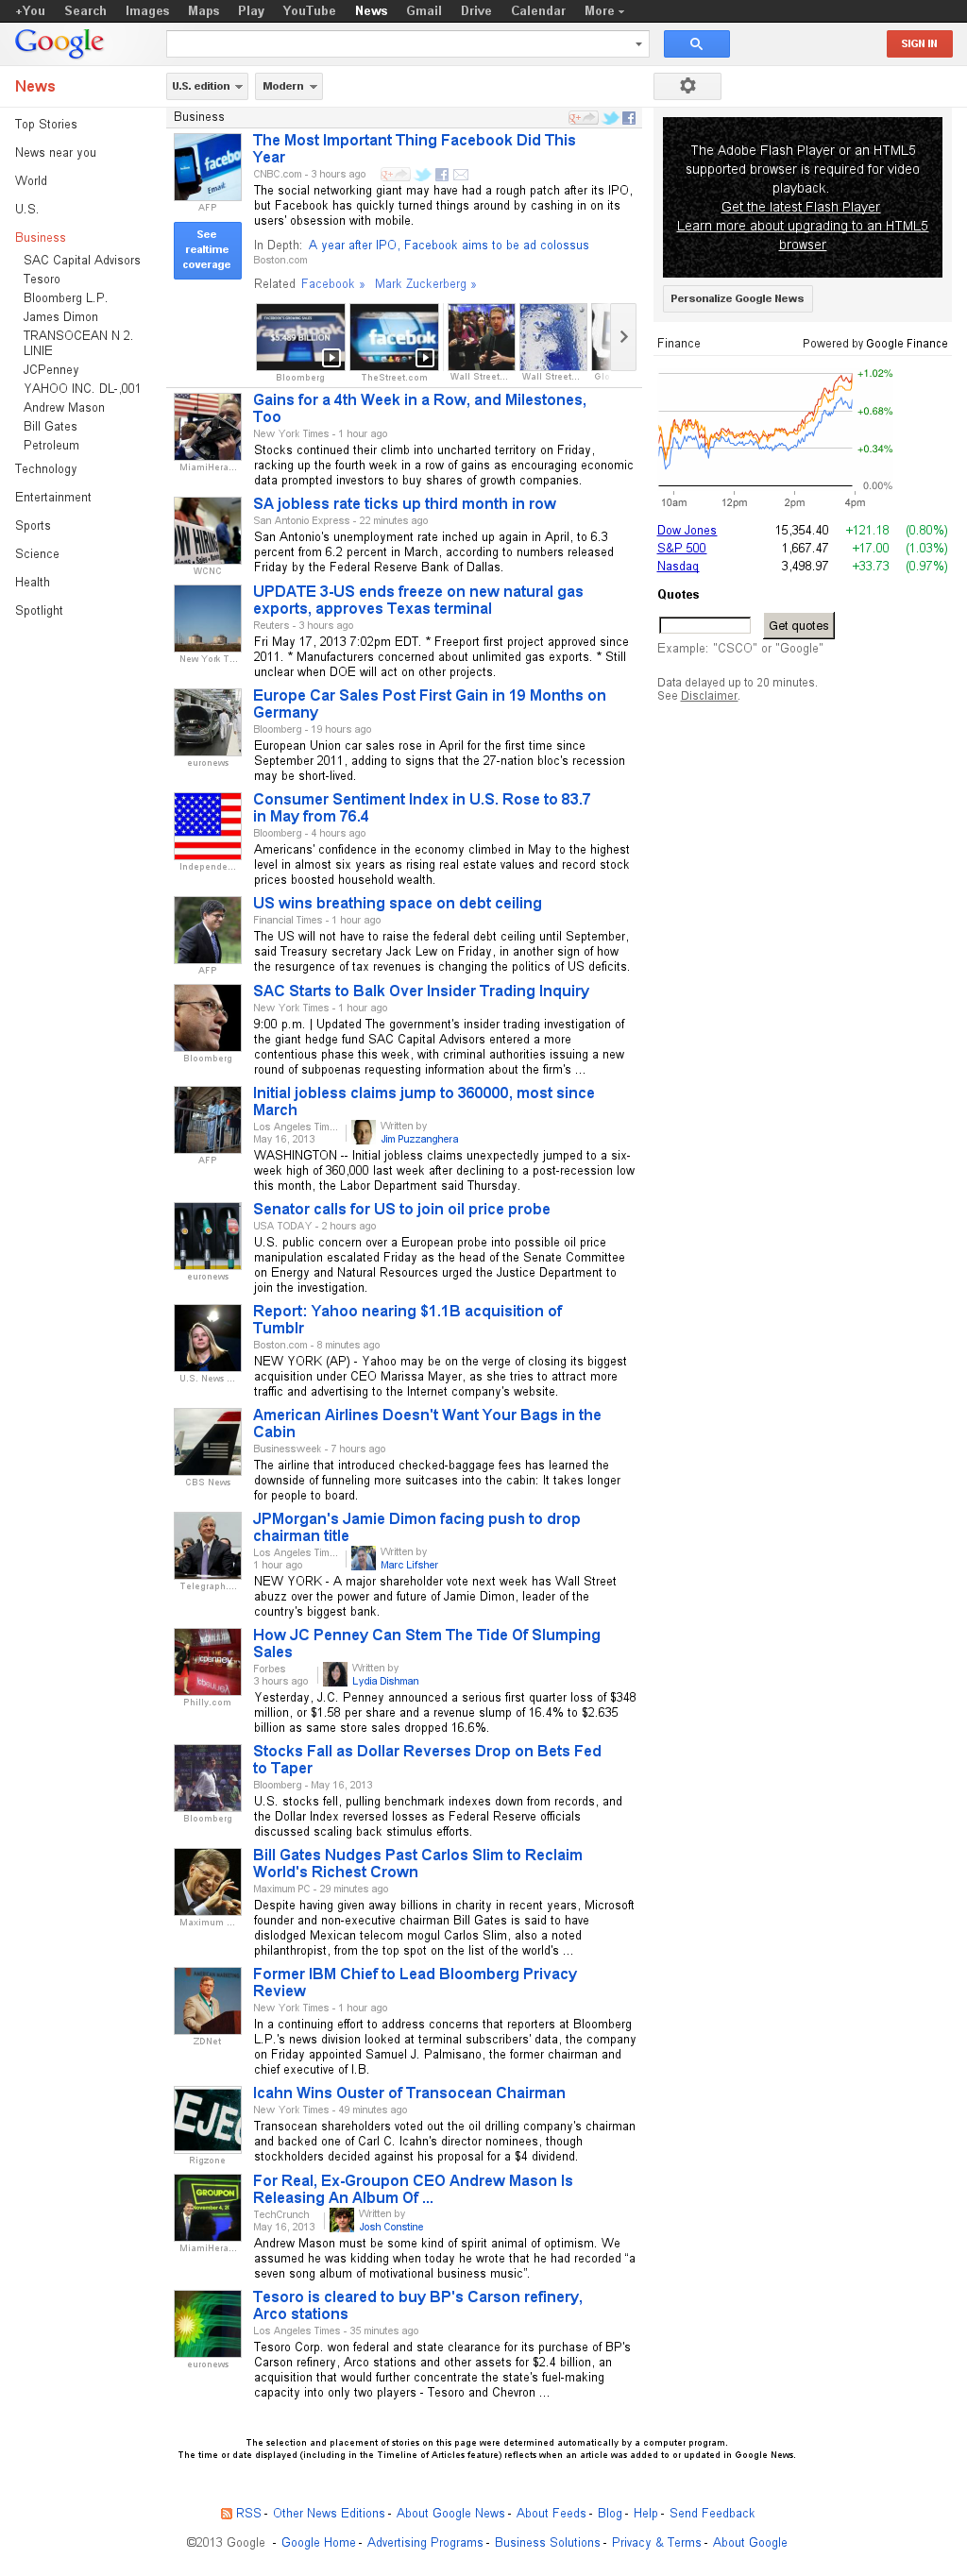 Google News: Business at Saturday May 18, 2013, 2:09 a.m. UTC